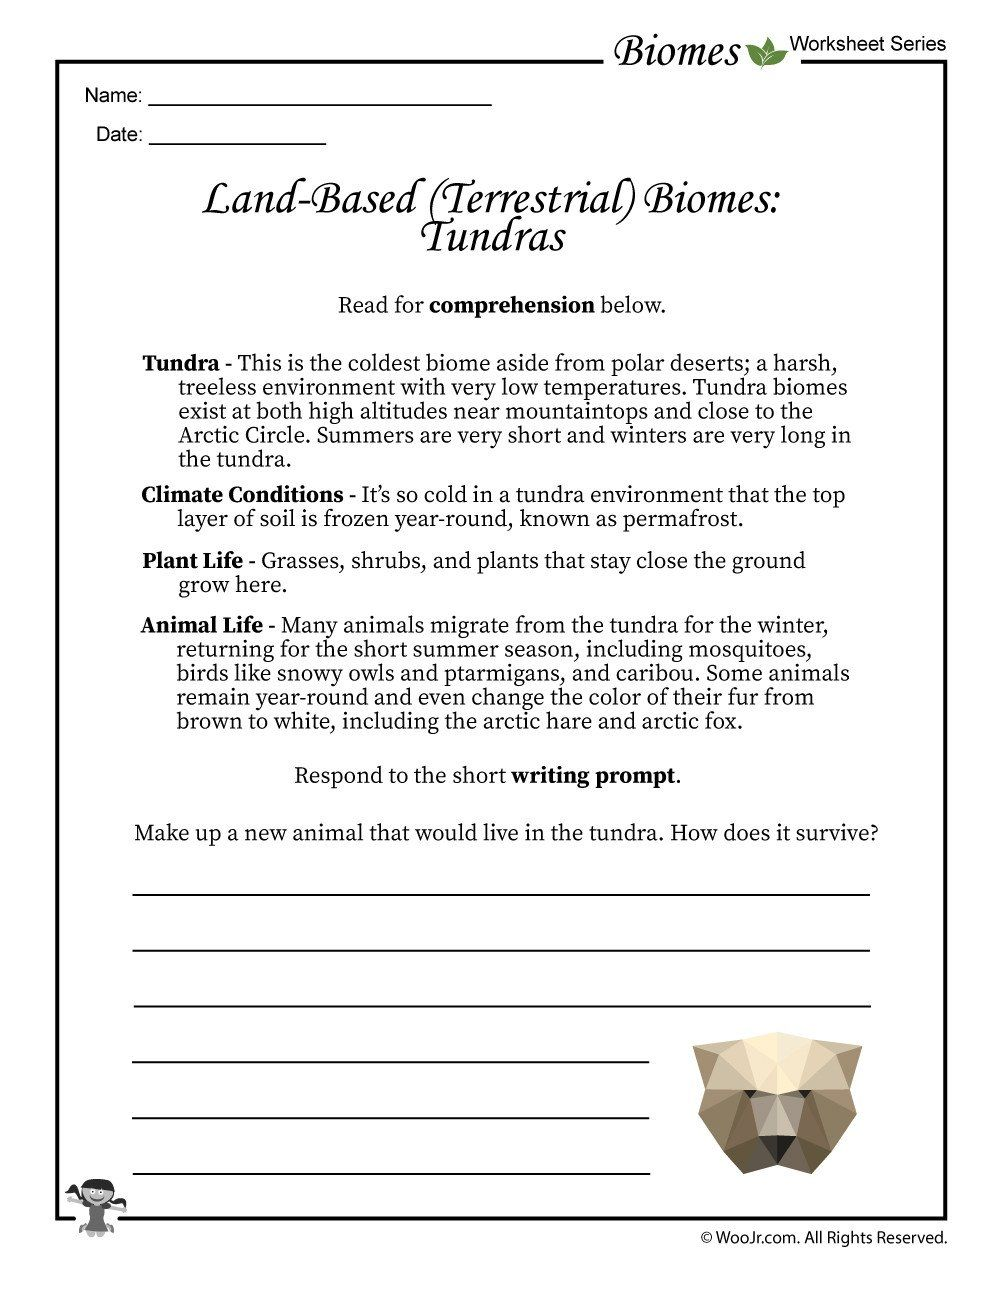 small resolution of 4 4 Biomes Worksheet Answers Biomes Worksheet Doc   Biomes